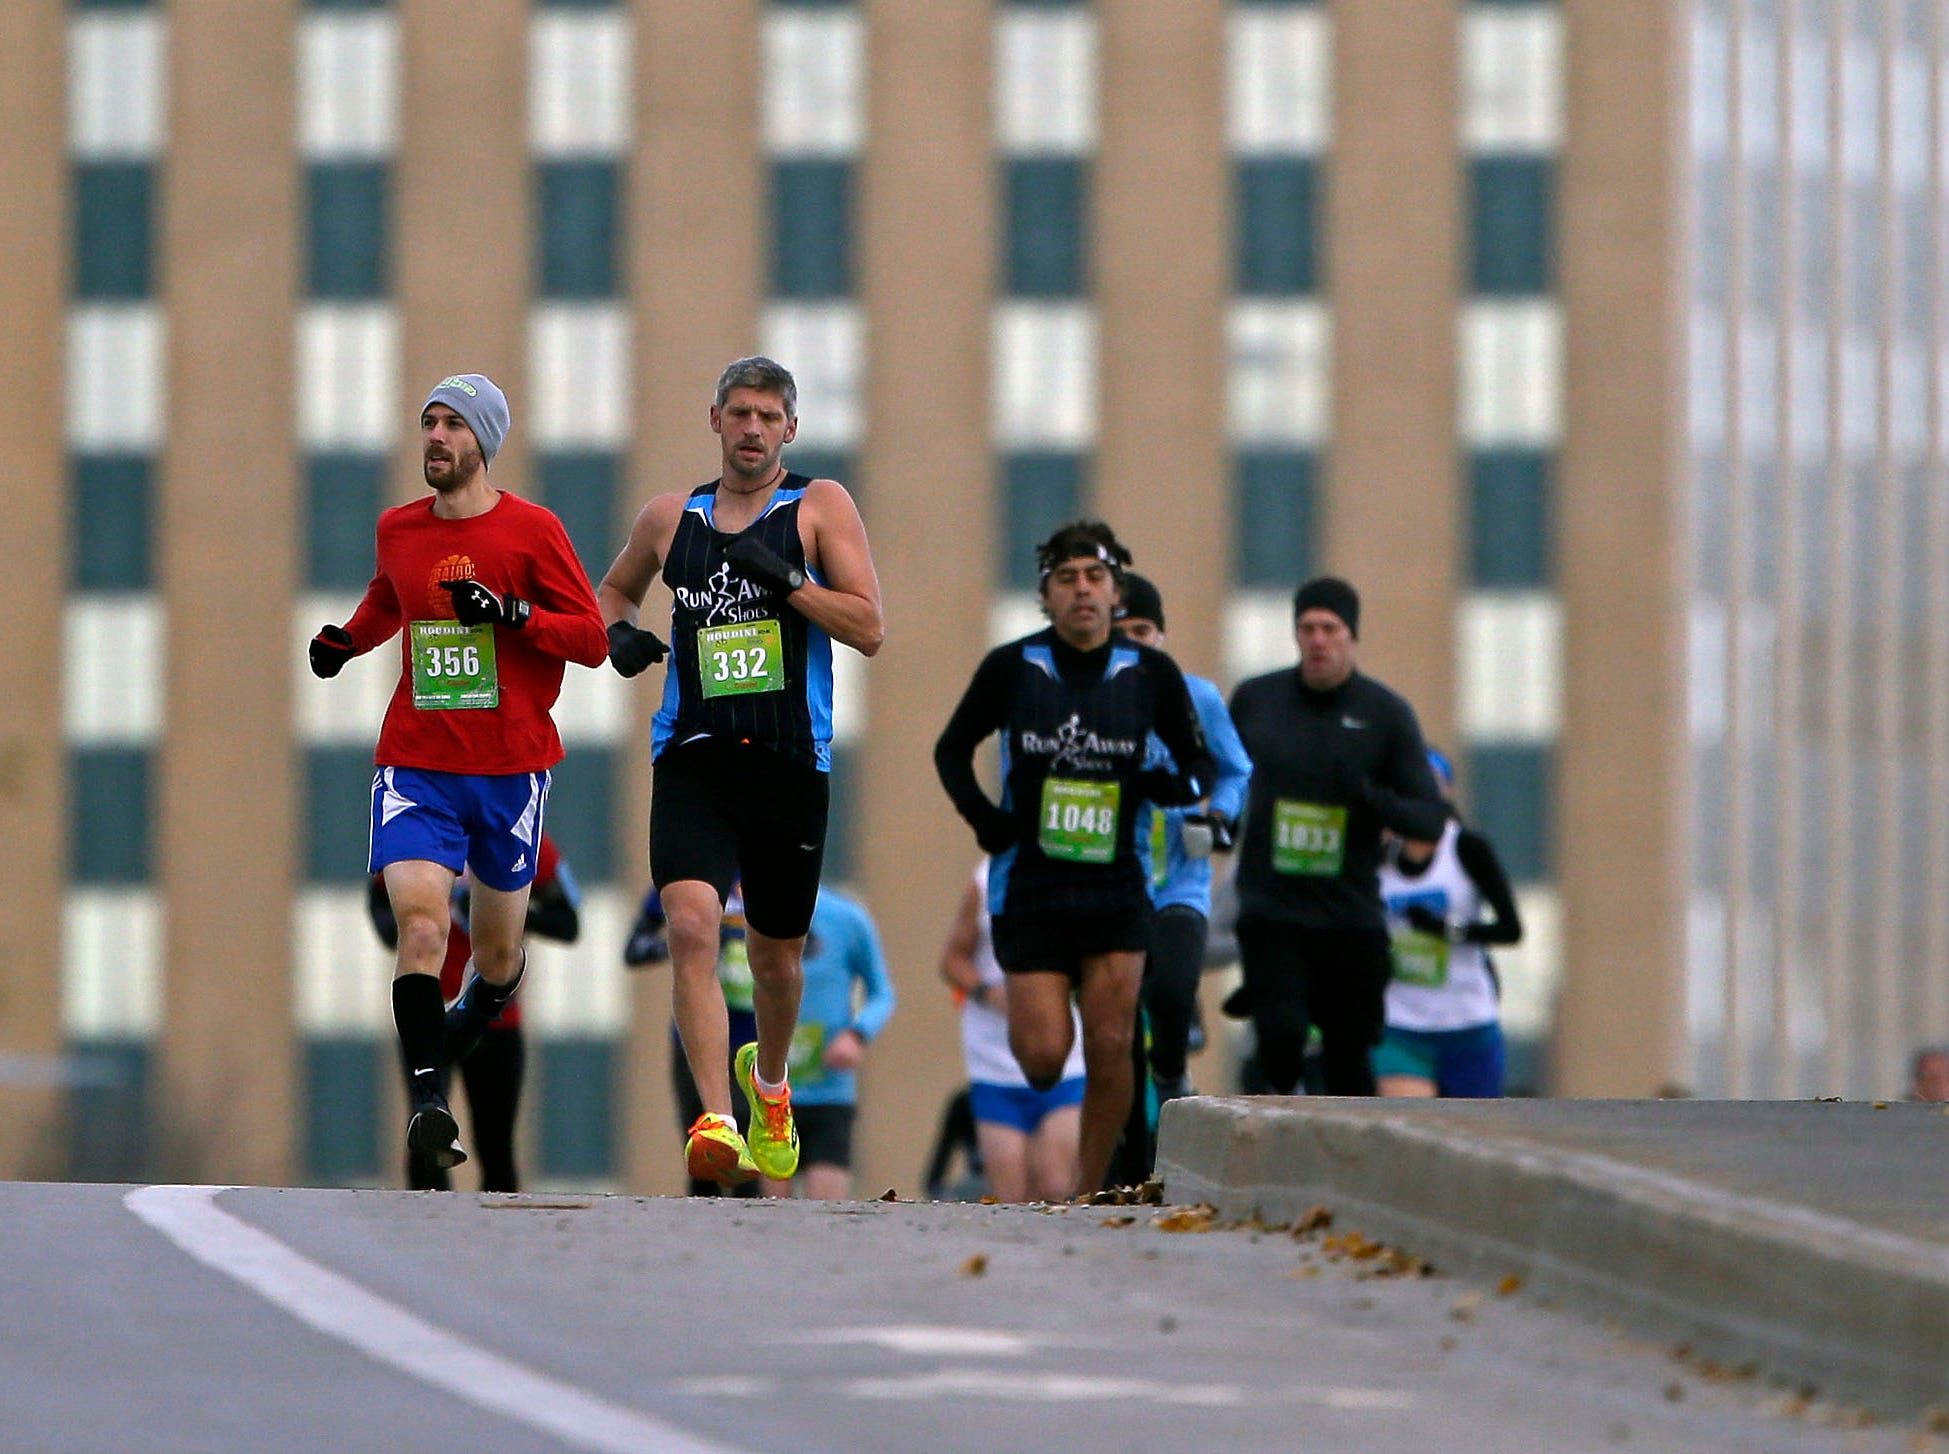 Runners cross the Oneida Street bridge as the 4th annual Appleton Houdini 10K takes place Saturday, November 3, 2018, in Appleton, Wis.